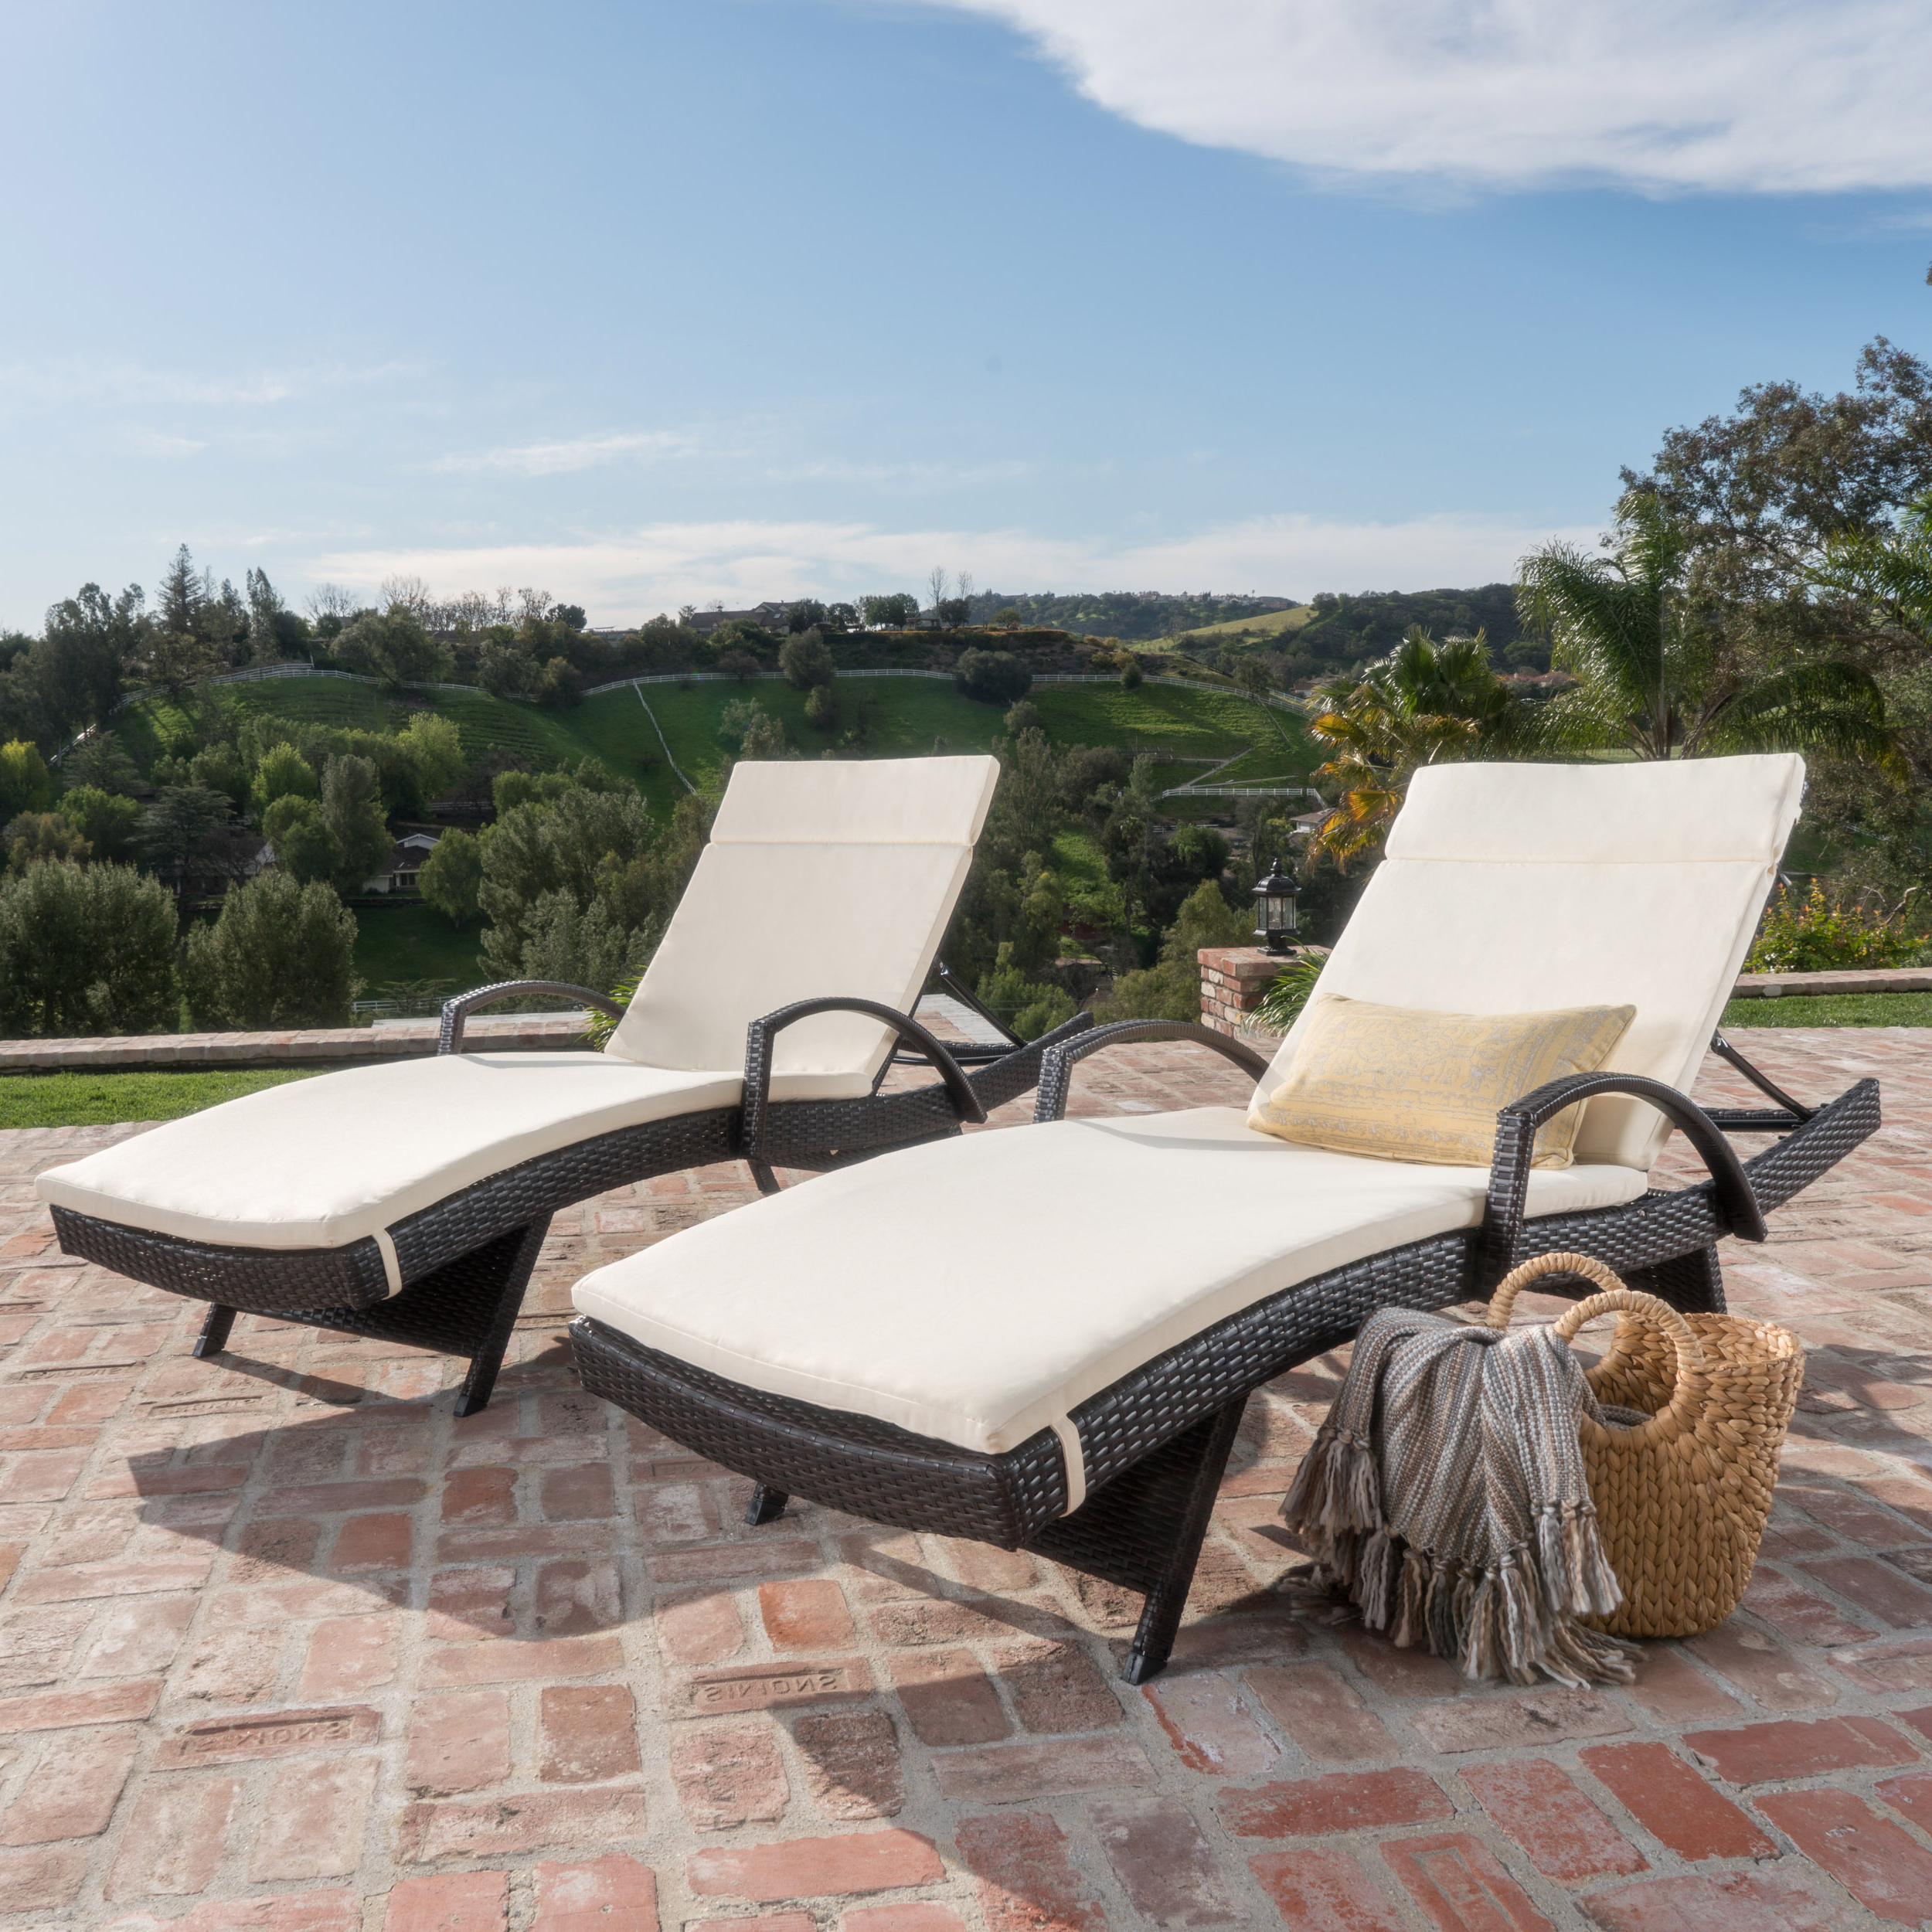 Most Current Anthony Outdoor Wicker Adjustable Chaise Lounge With Arms And Cushion, Set  Of 2, Multibrown, Ivory Inside Outdoor Wicker Adjustable Chaise Lounges With Cushions (View 9 of 25)